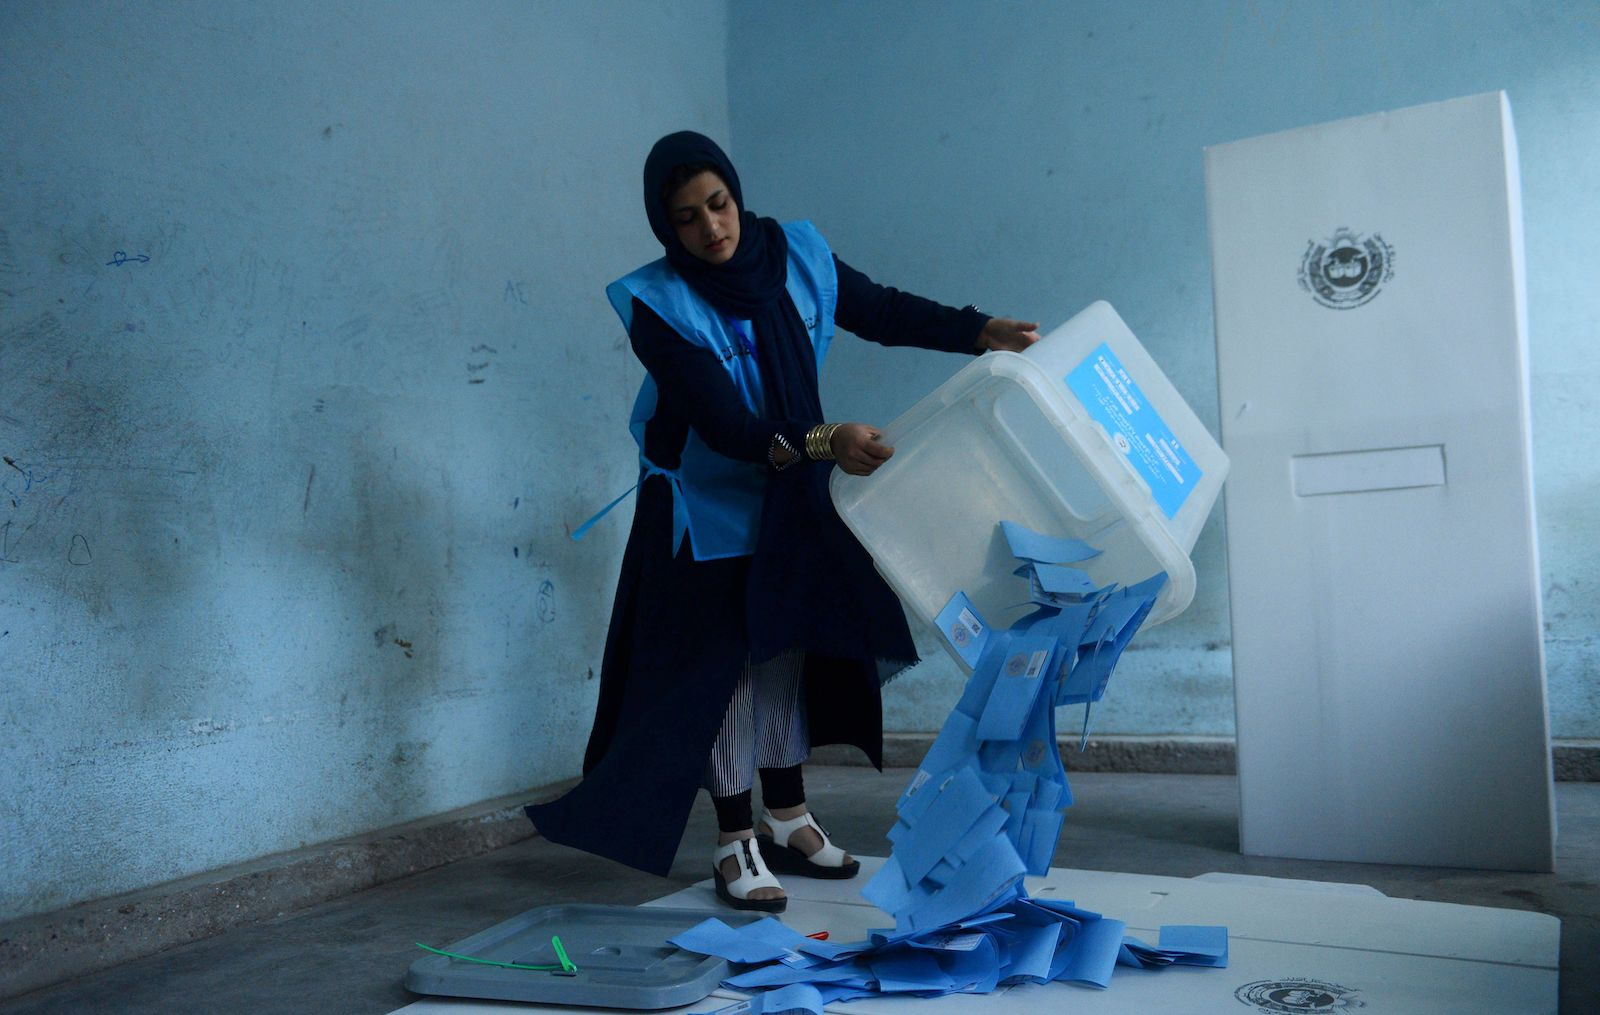 An Afghan election official empties a ballot box to count ballot papers, Herat, 28 September 2019 (Photo: Hoshang Hashimi/AFP/Getty Images)